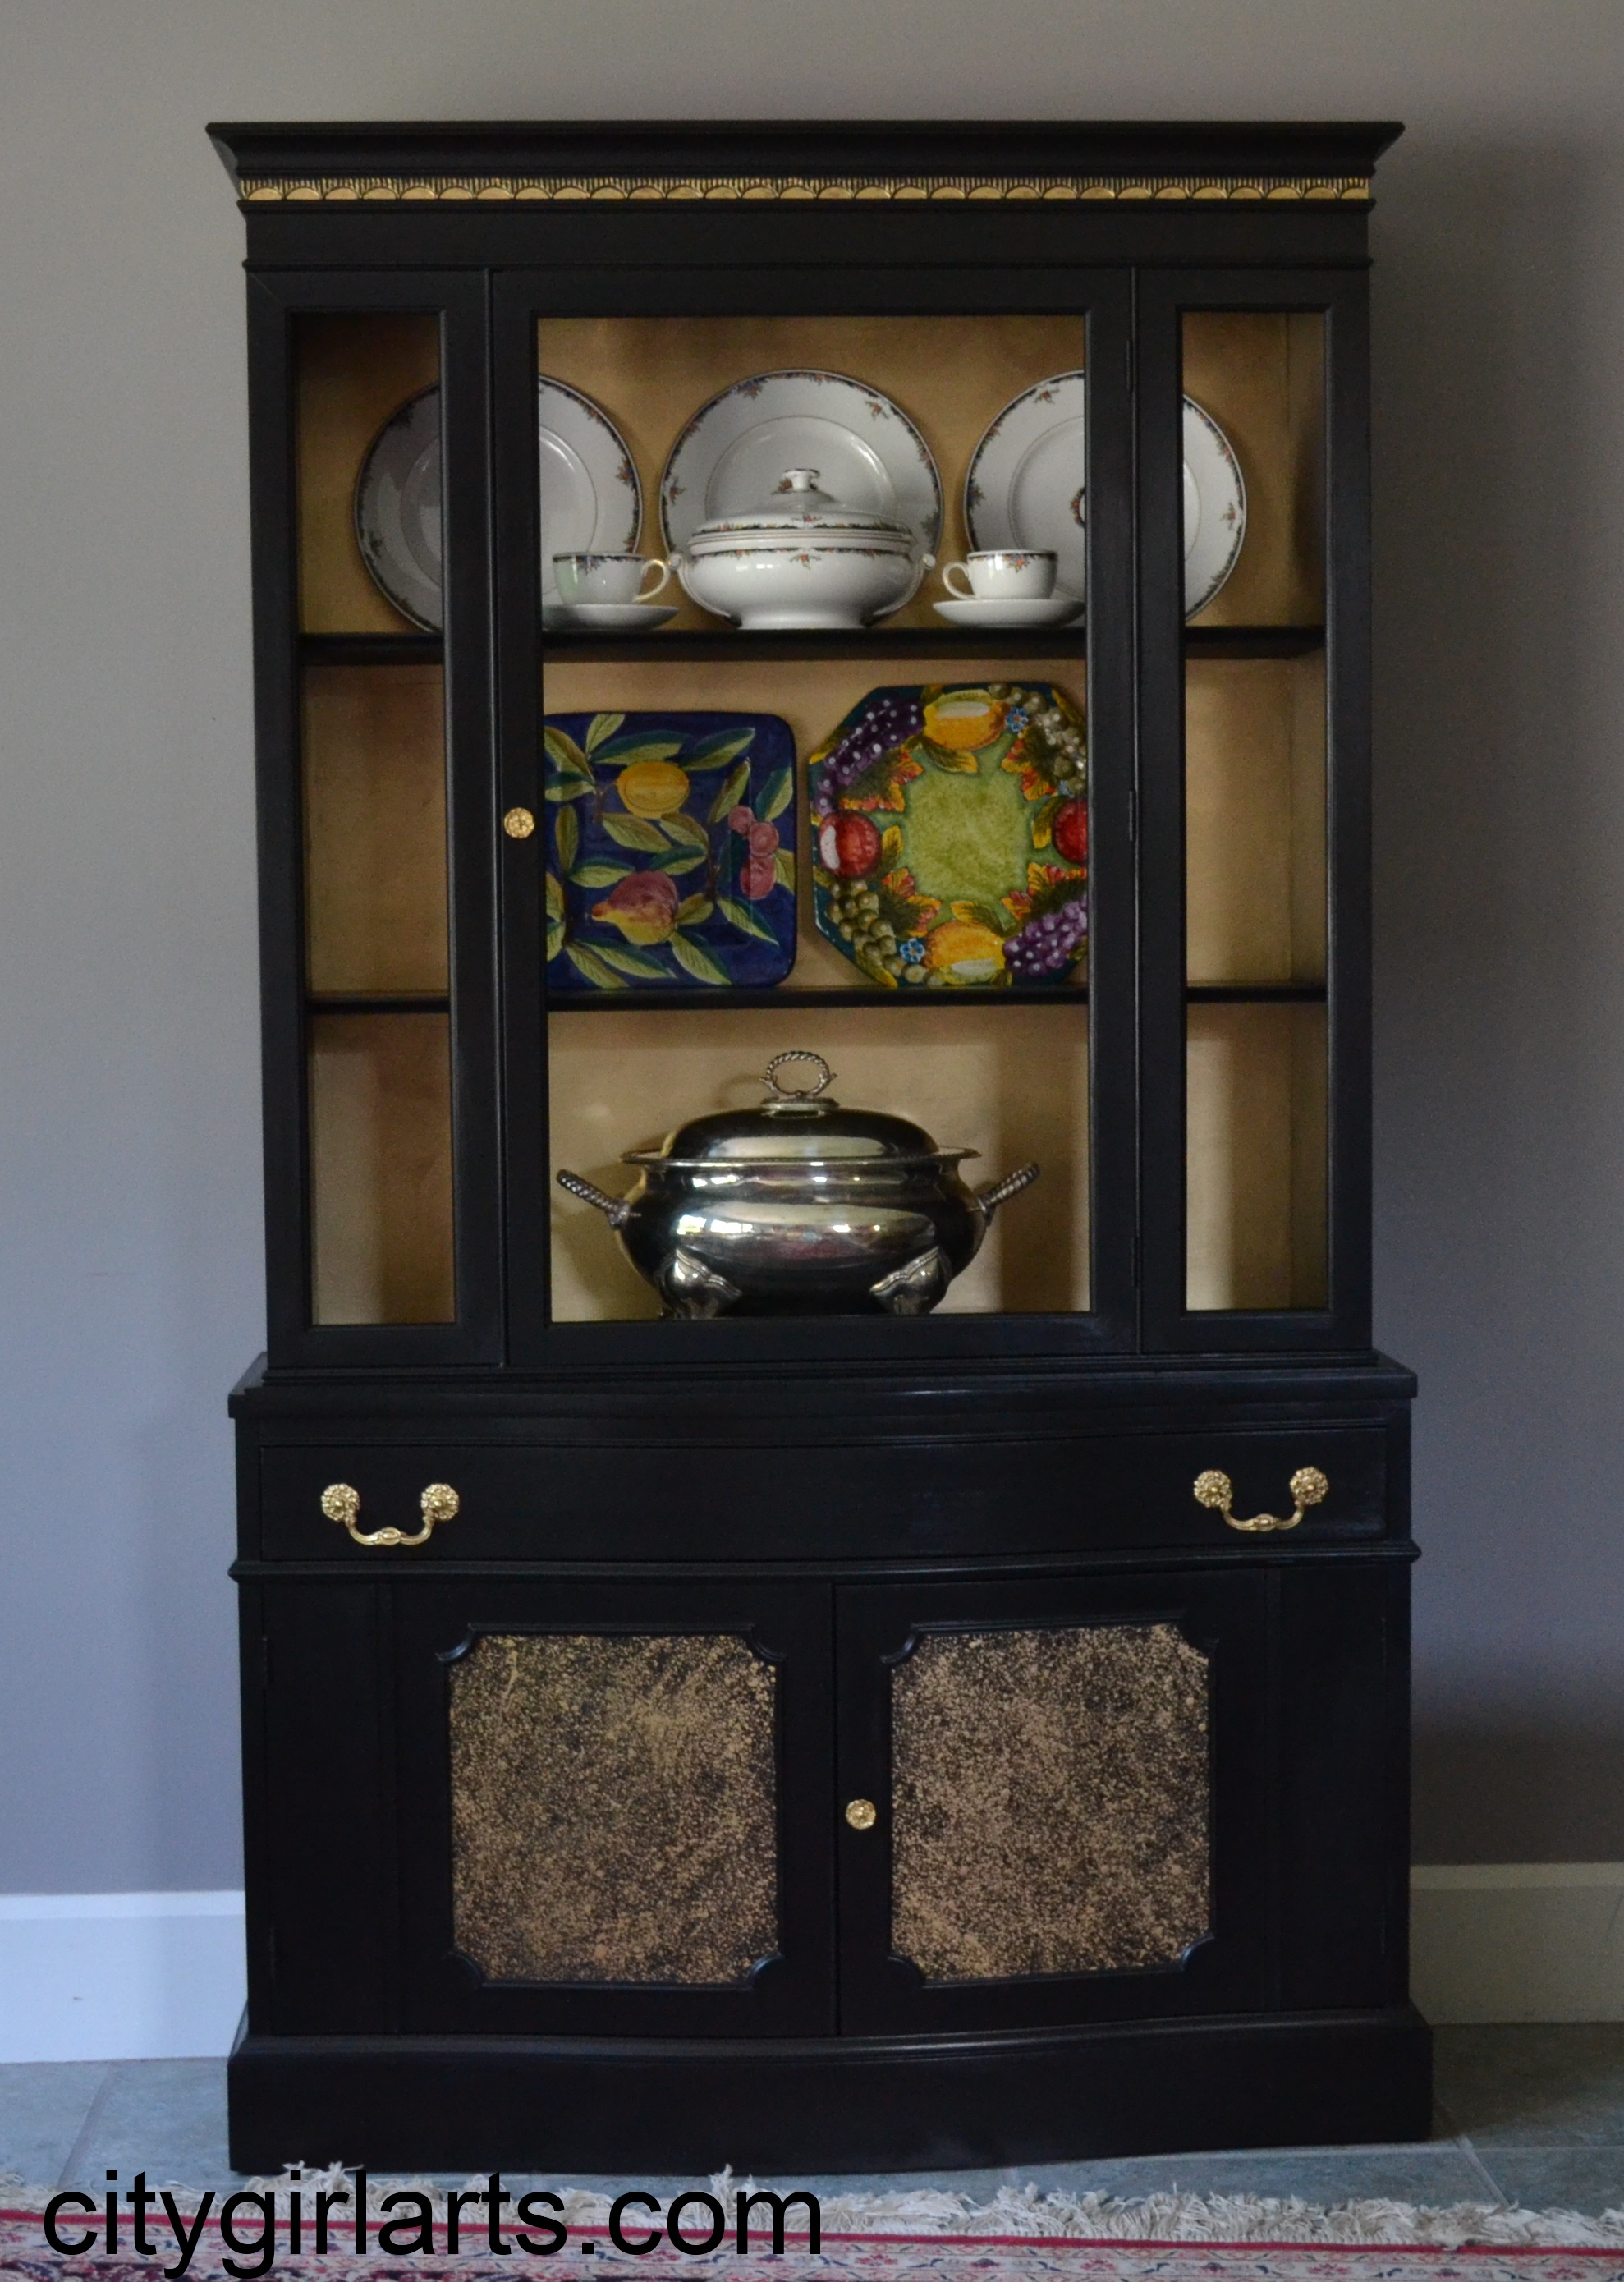 Jet Black Cabinet with Golden Accents SOLD